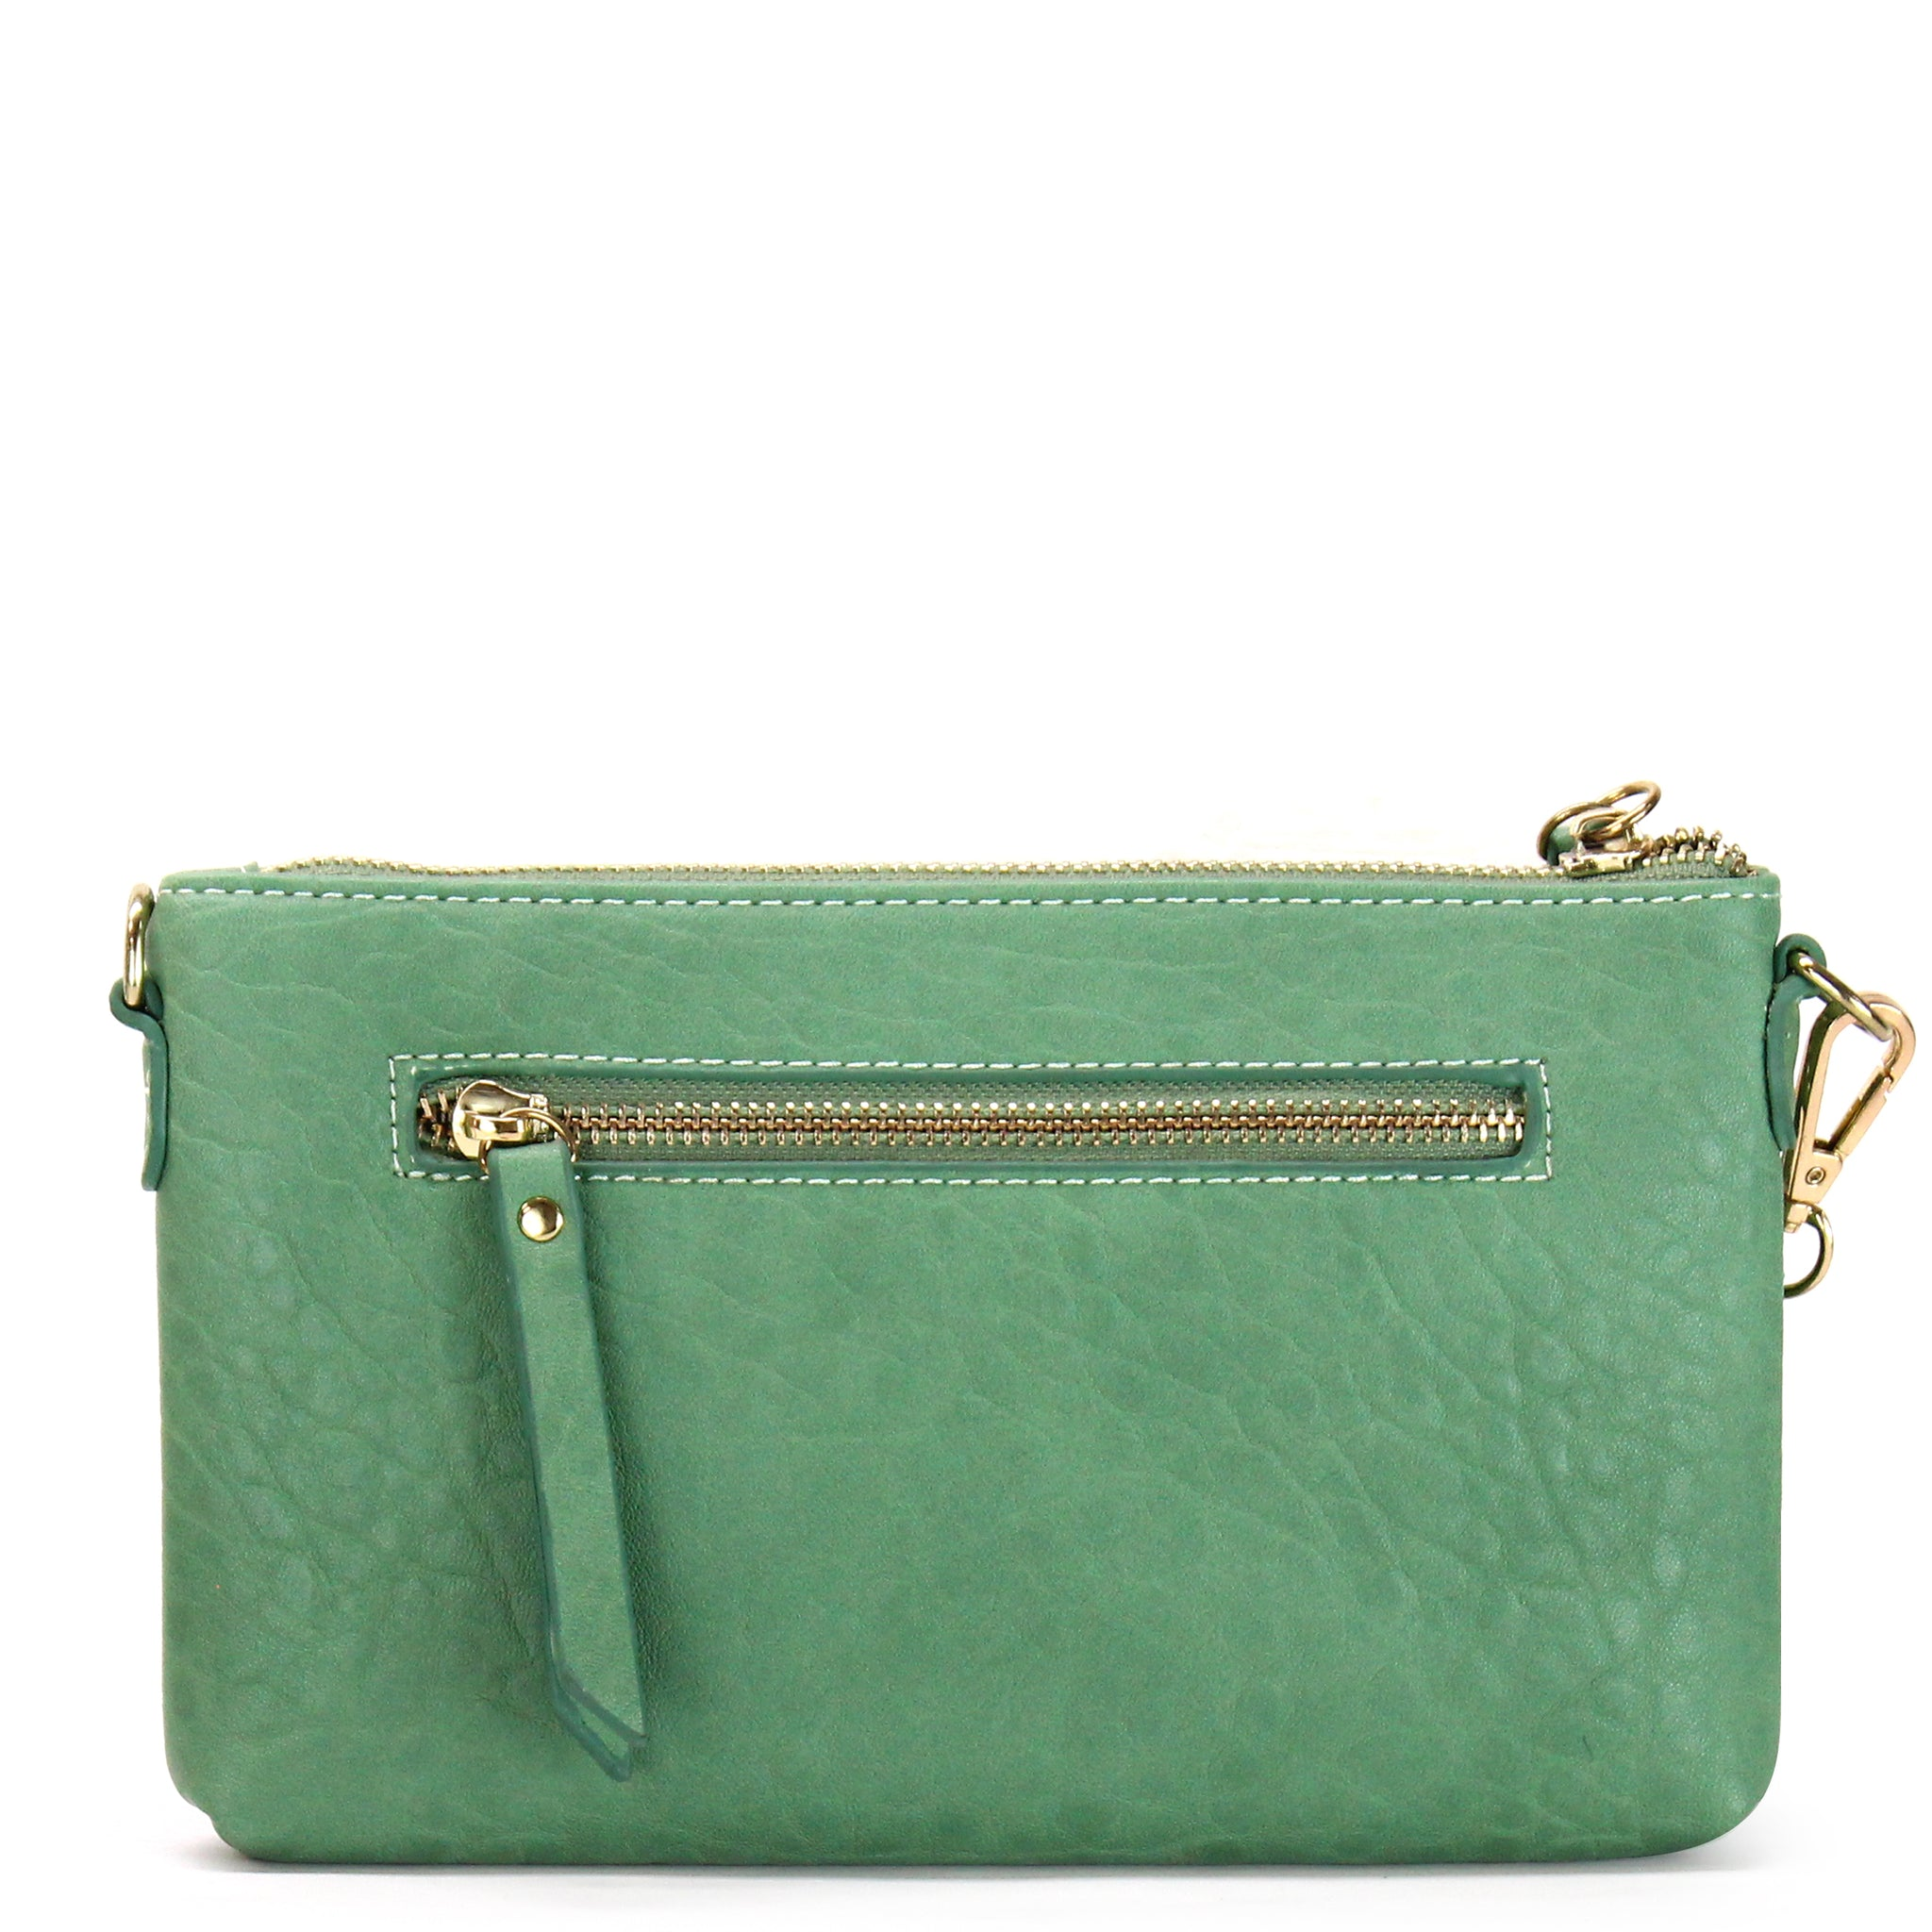 FRONT ZIPPER WRISTLET CLUTCH CROSSBODY BAG - Jenuine Handbags